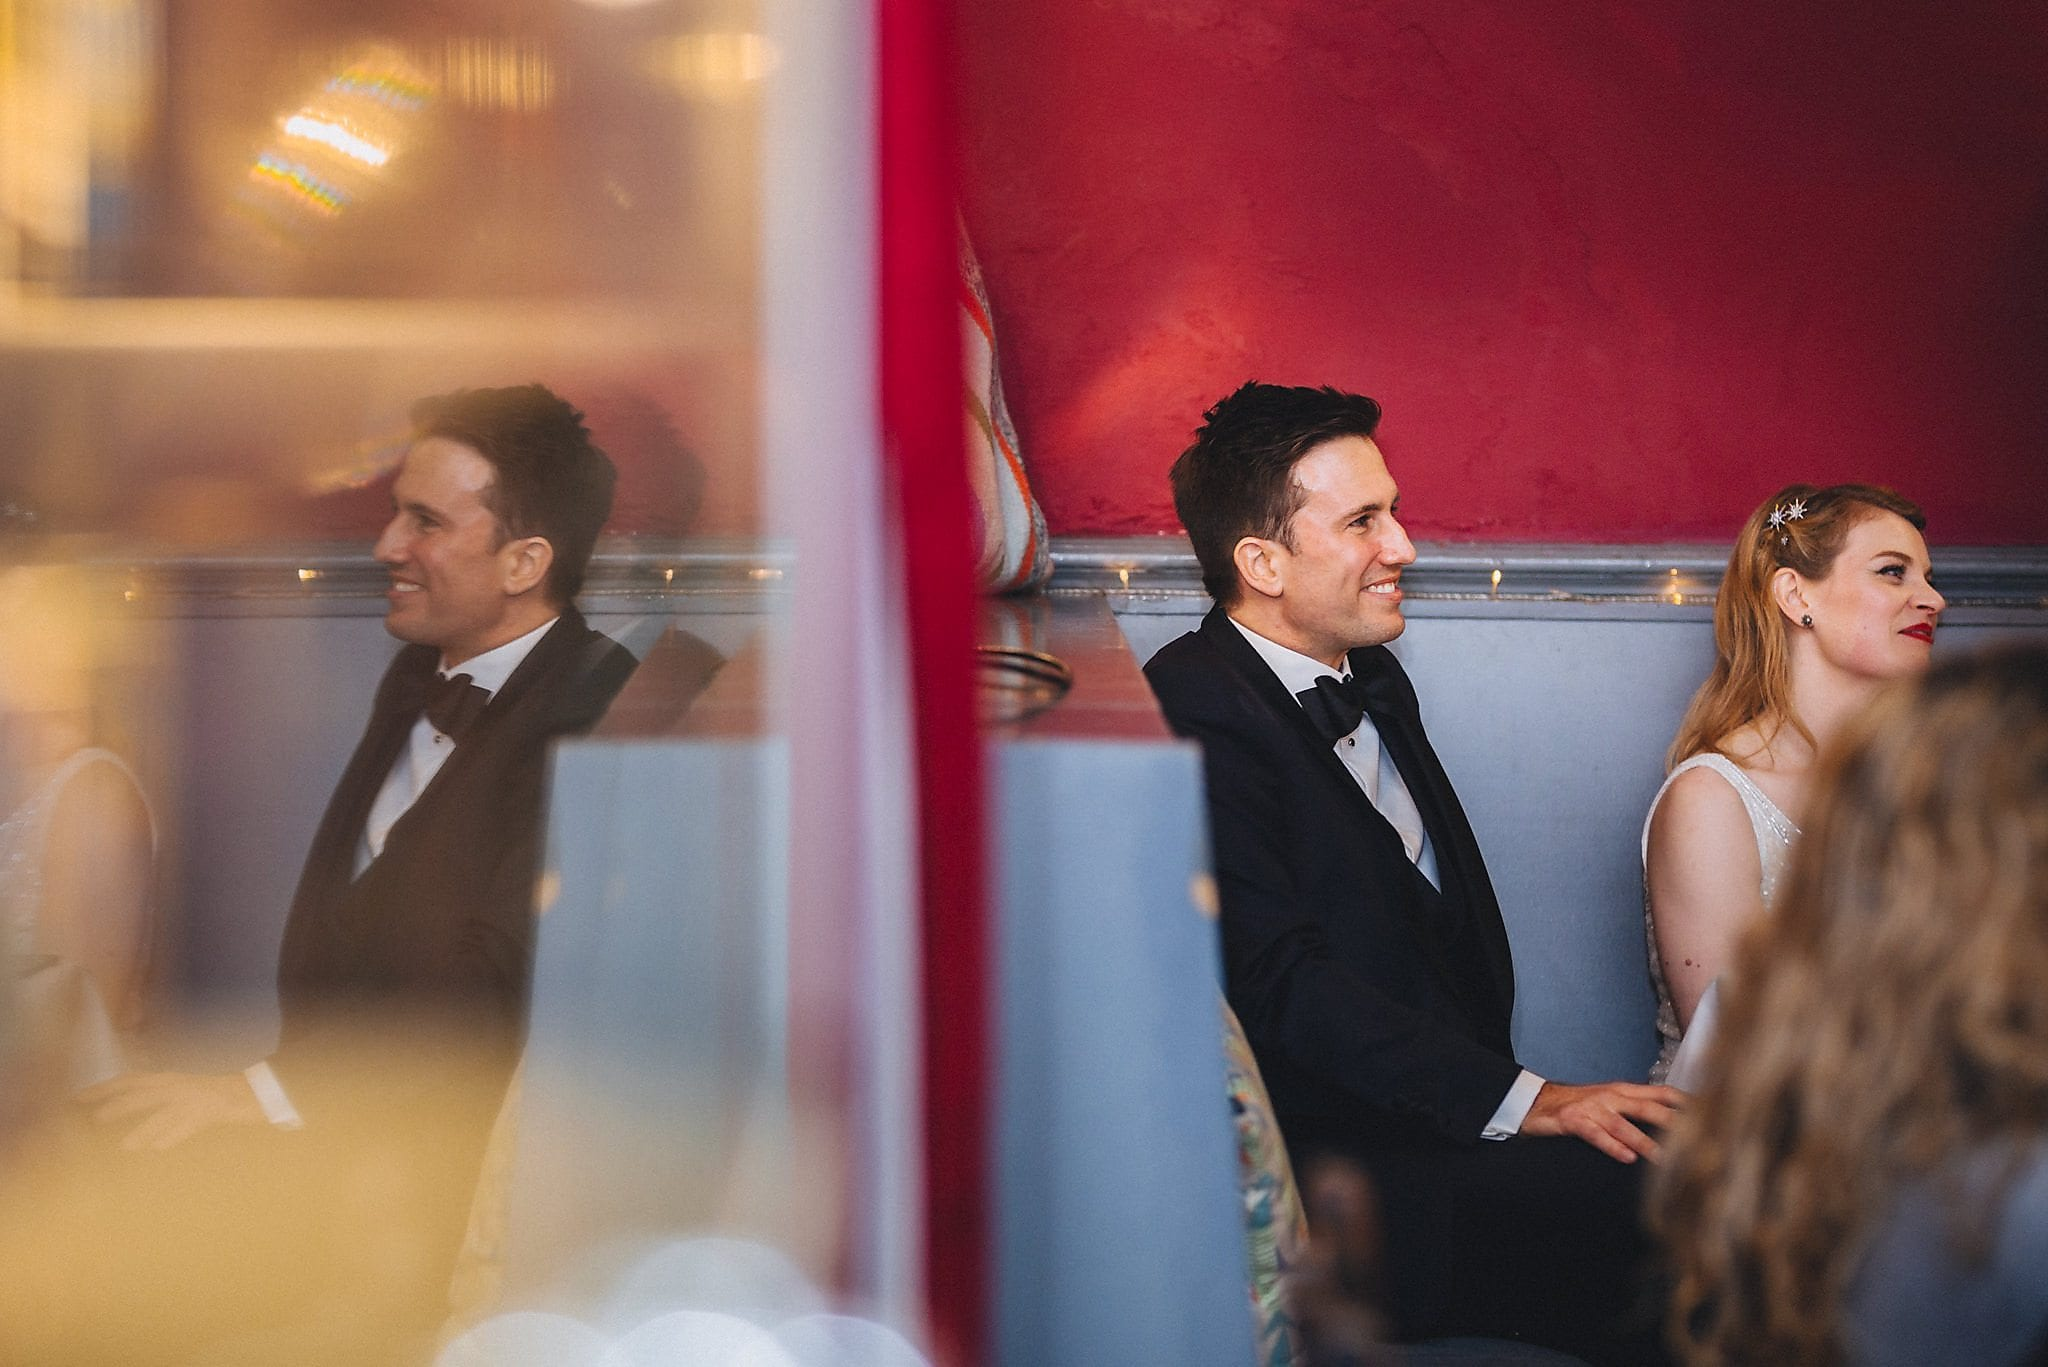 Groom and bride listen to speeches